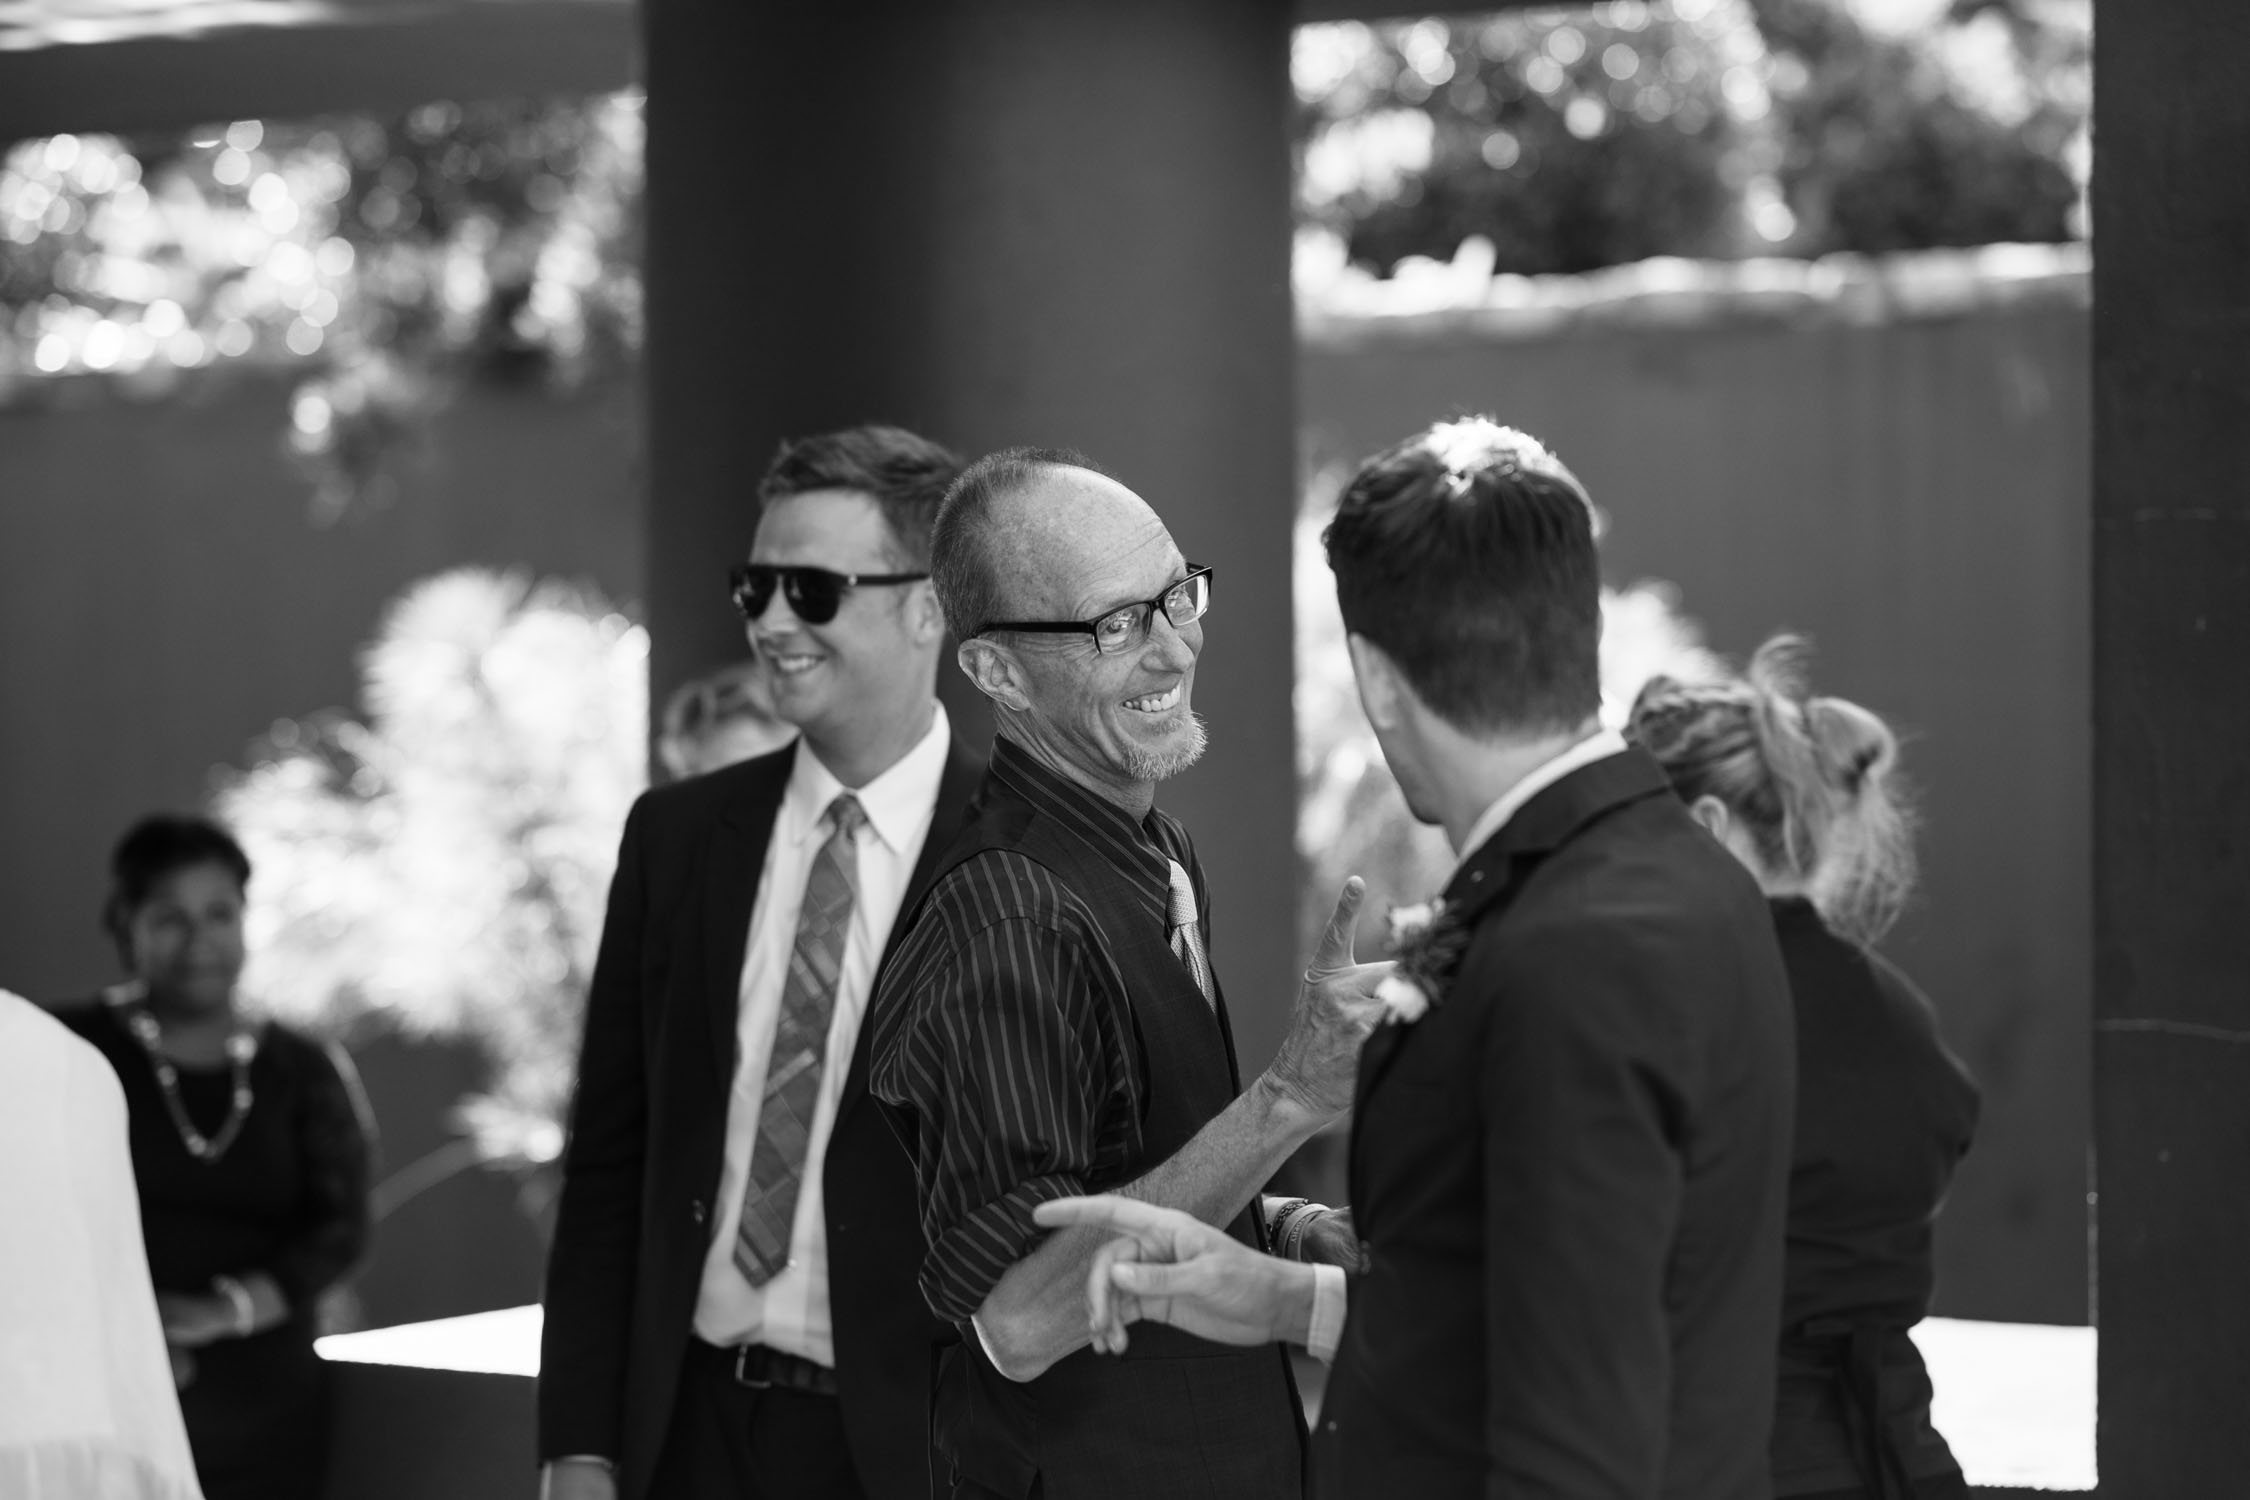 Natural Wedding Photos Of Guests Laughing